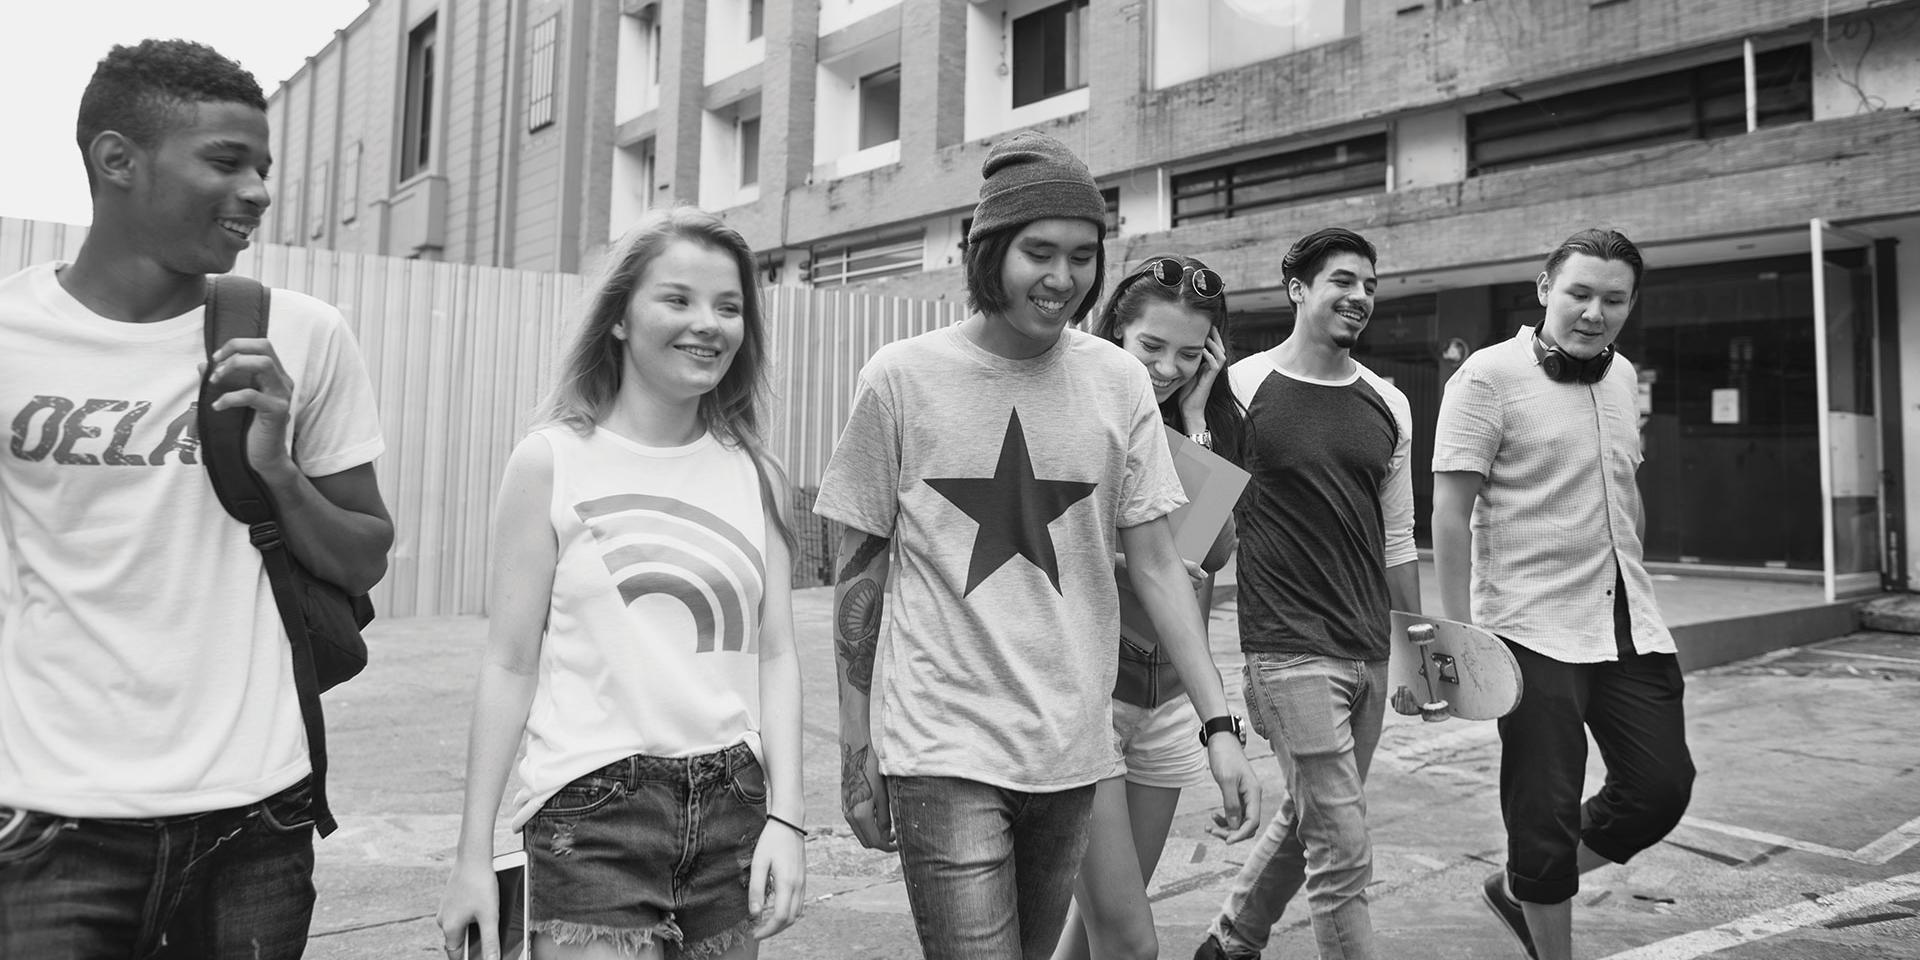 Group of young people walking together